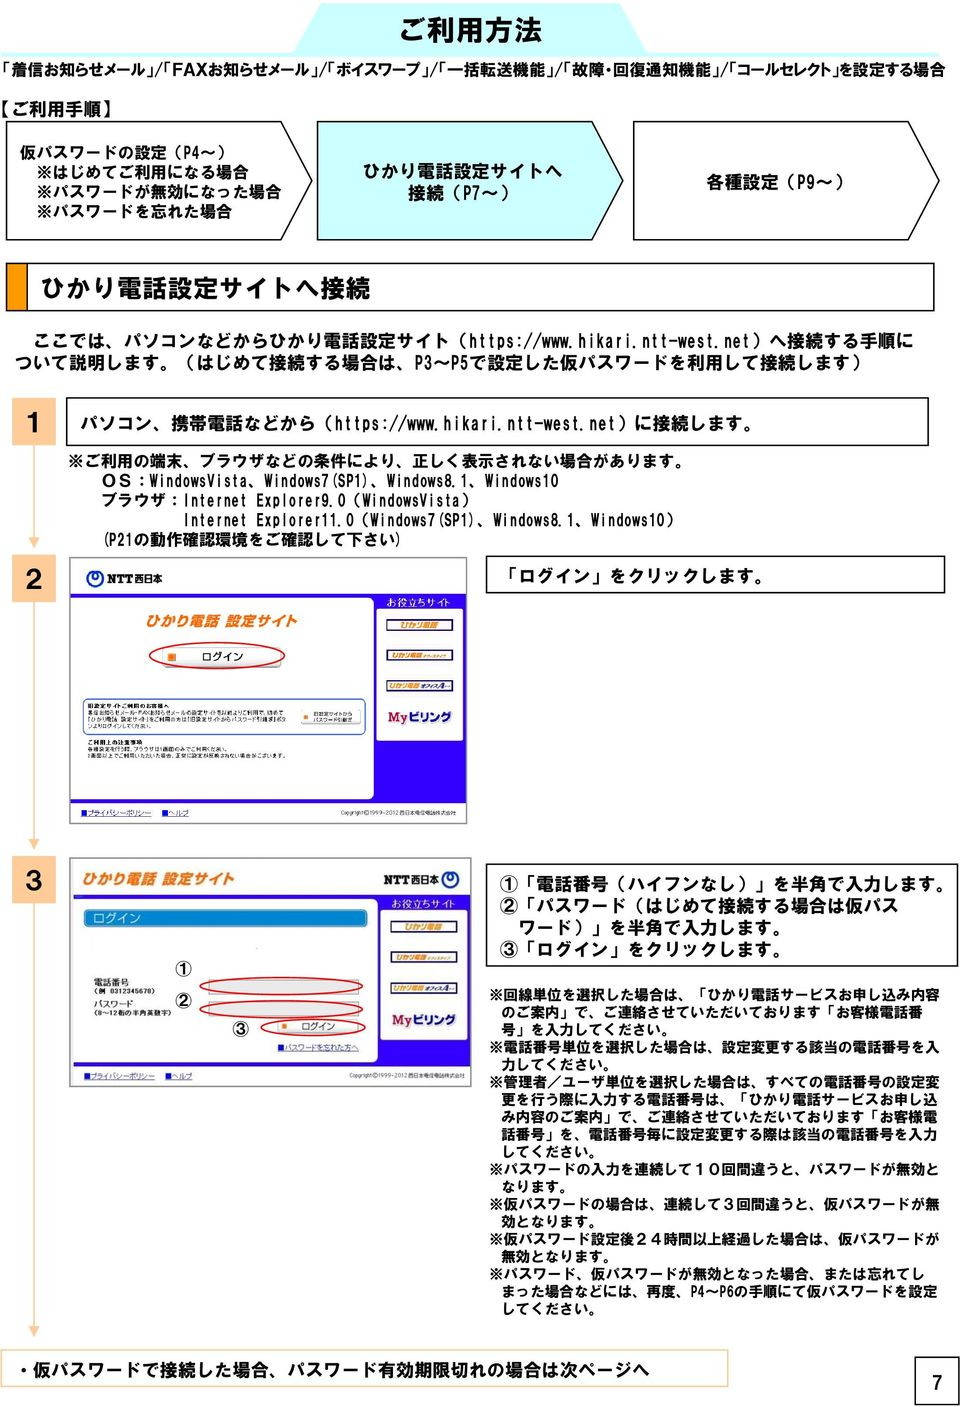 Windows0 ブラウザ:Internet Explorer9.0(WindowsVista) Internet Explorer.0(Windows7(SP) Windows8.